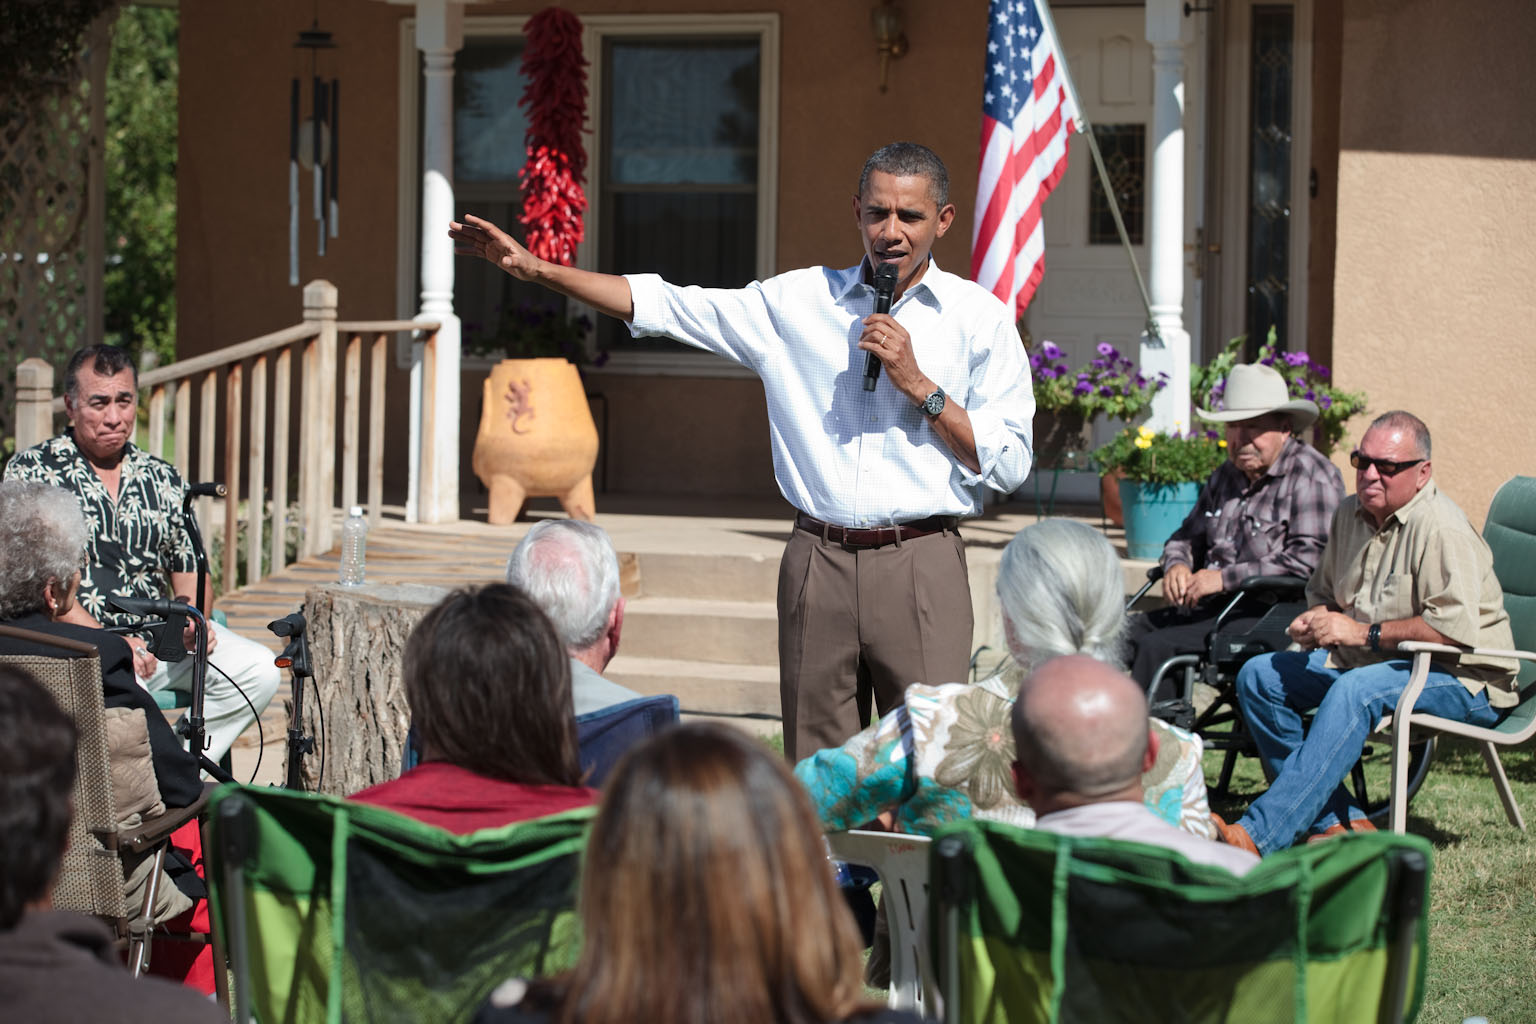 President Barack Obama Holds a Discussion on the Economy with Area Families in Albuquerque, New Mexico